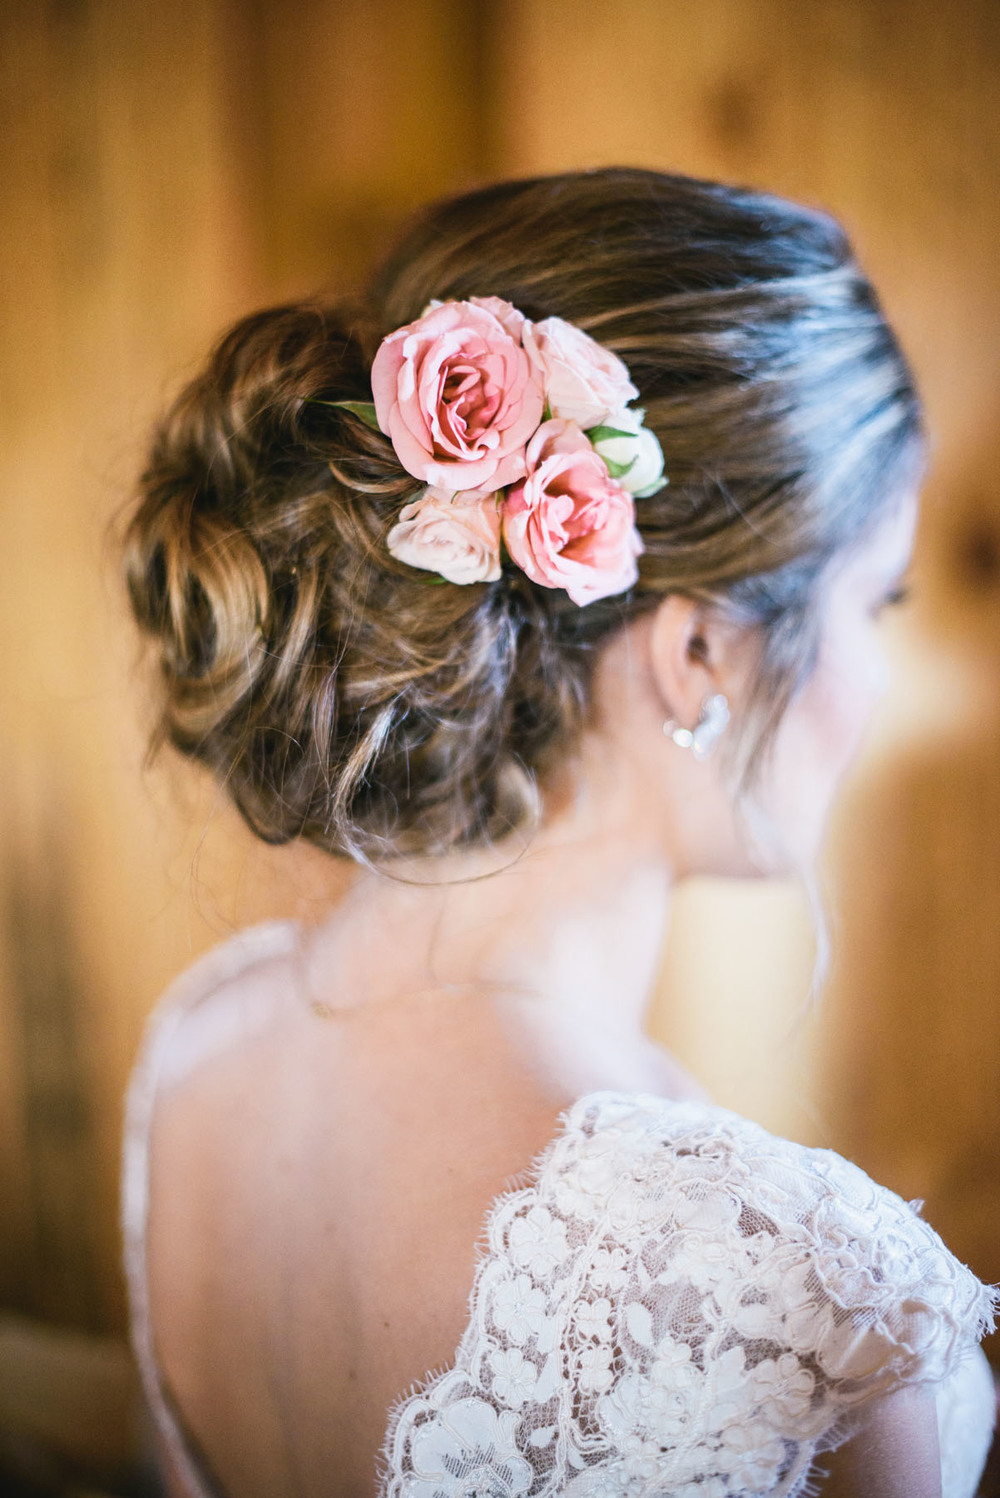 Bride's hair updo roses